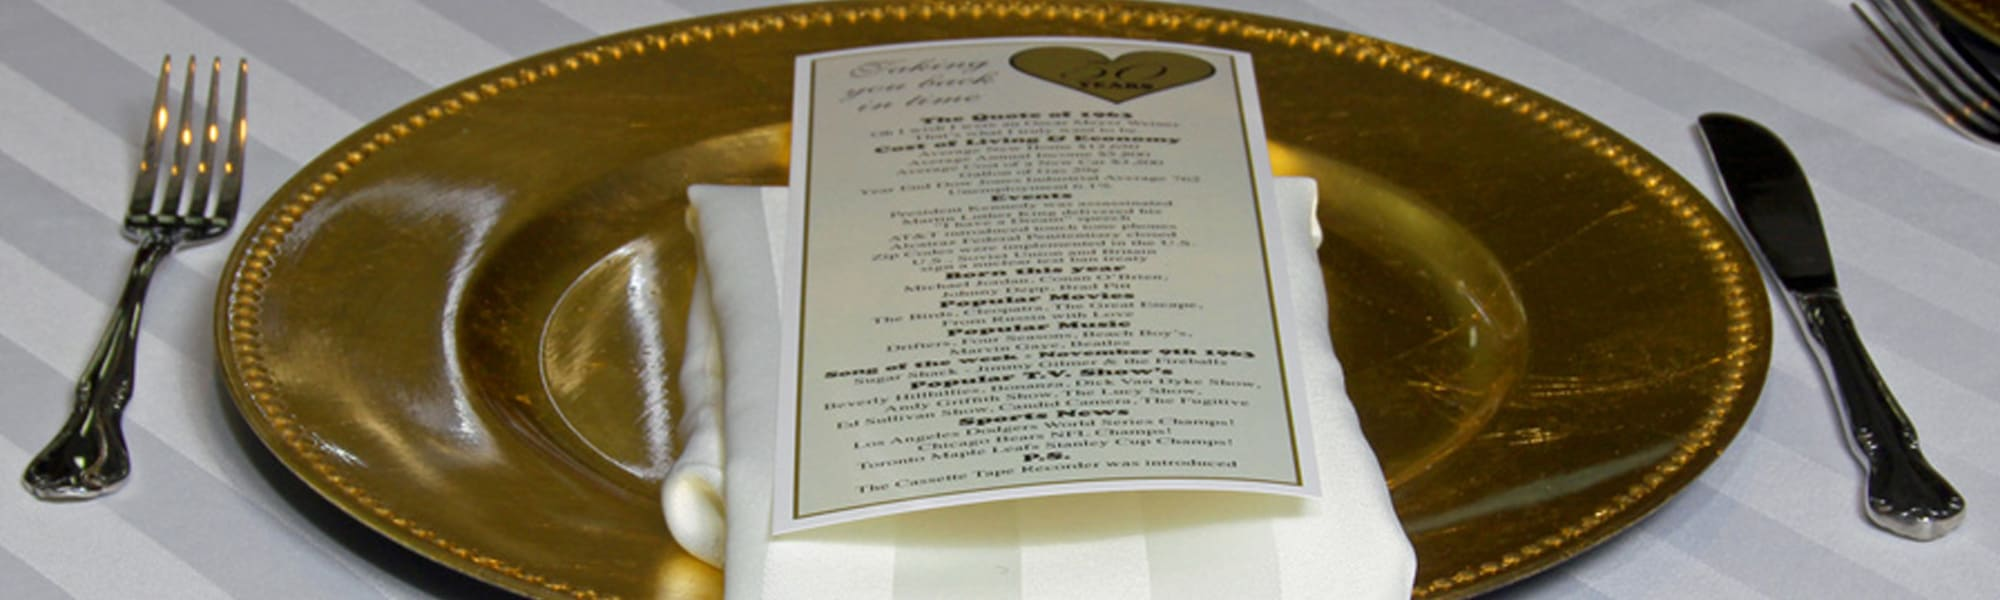 Catering Services Terms and Conditions